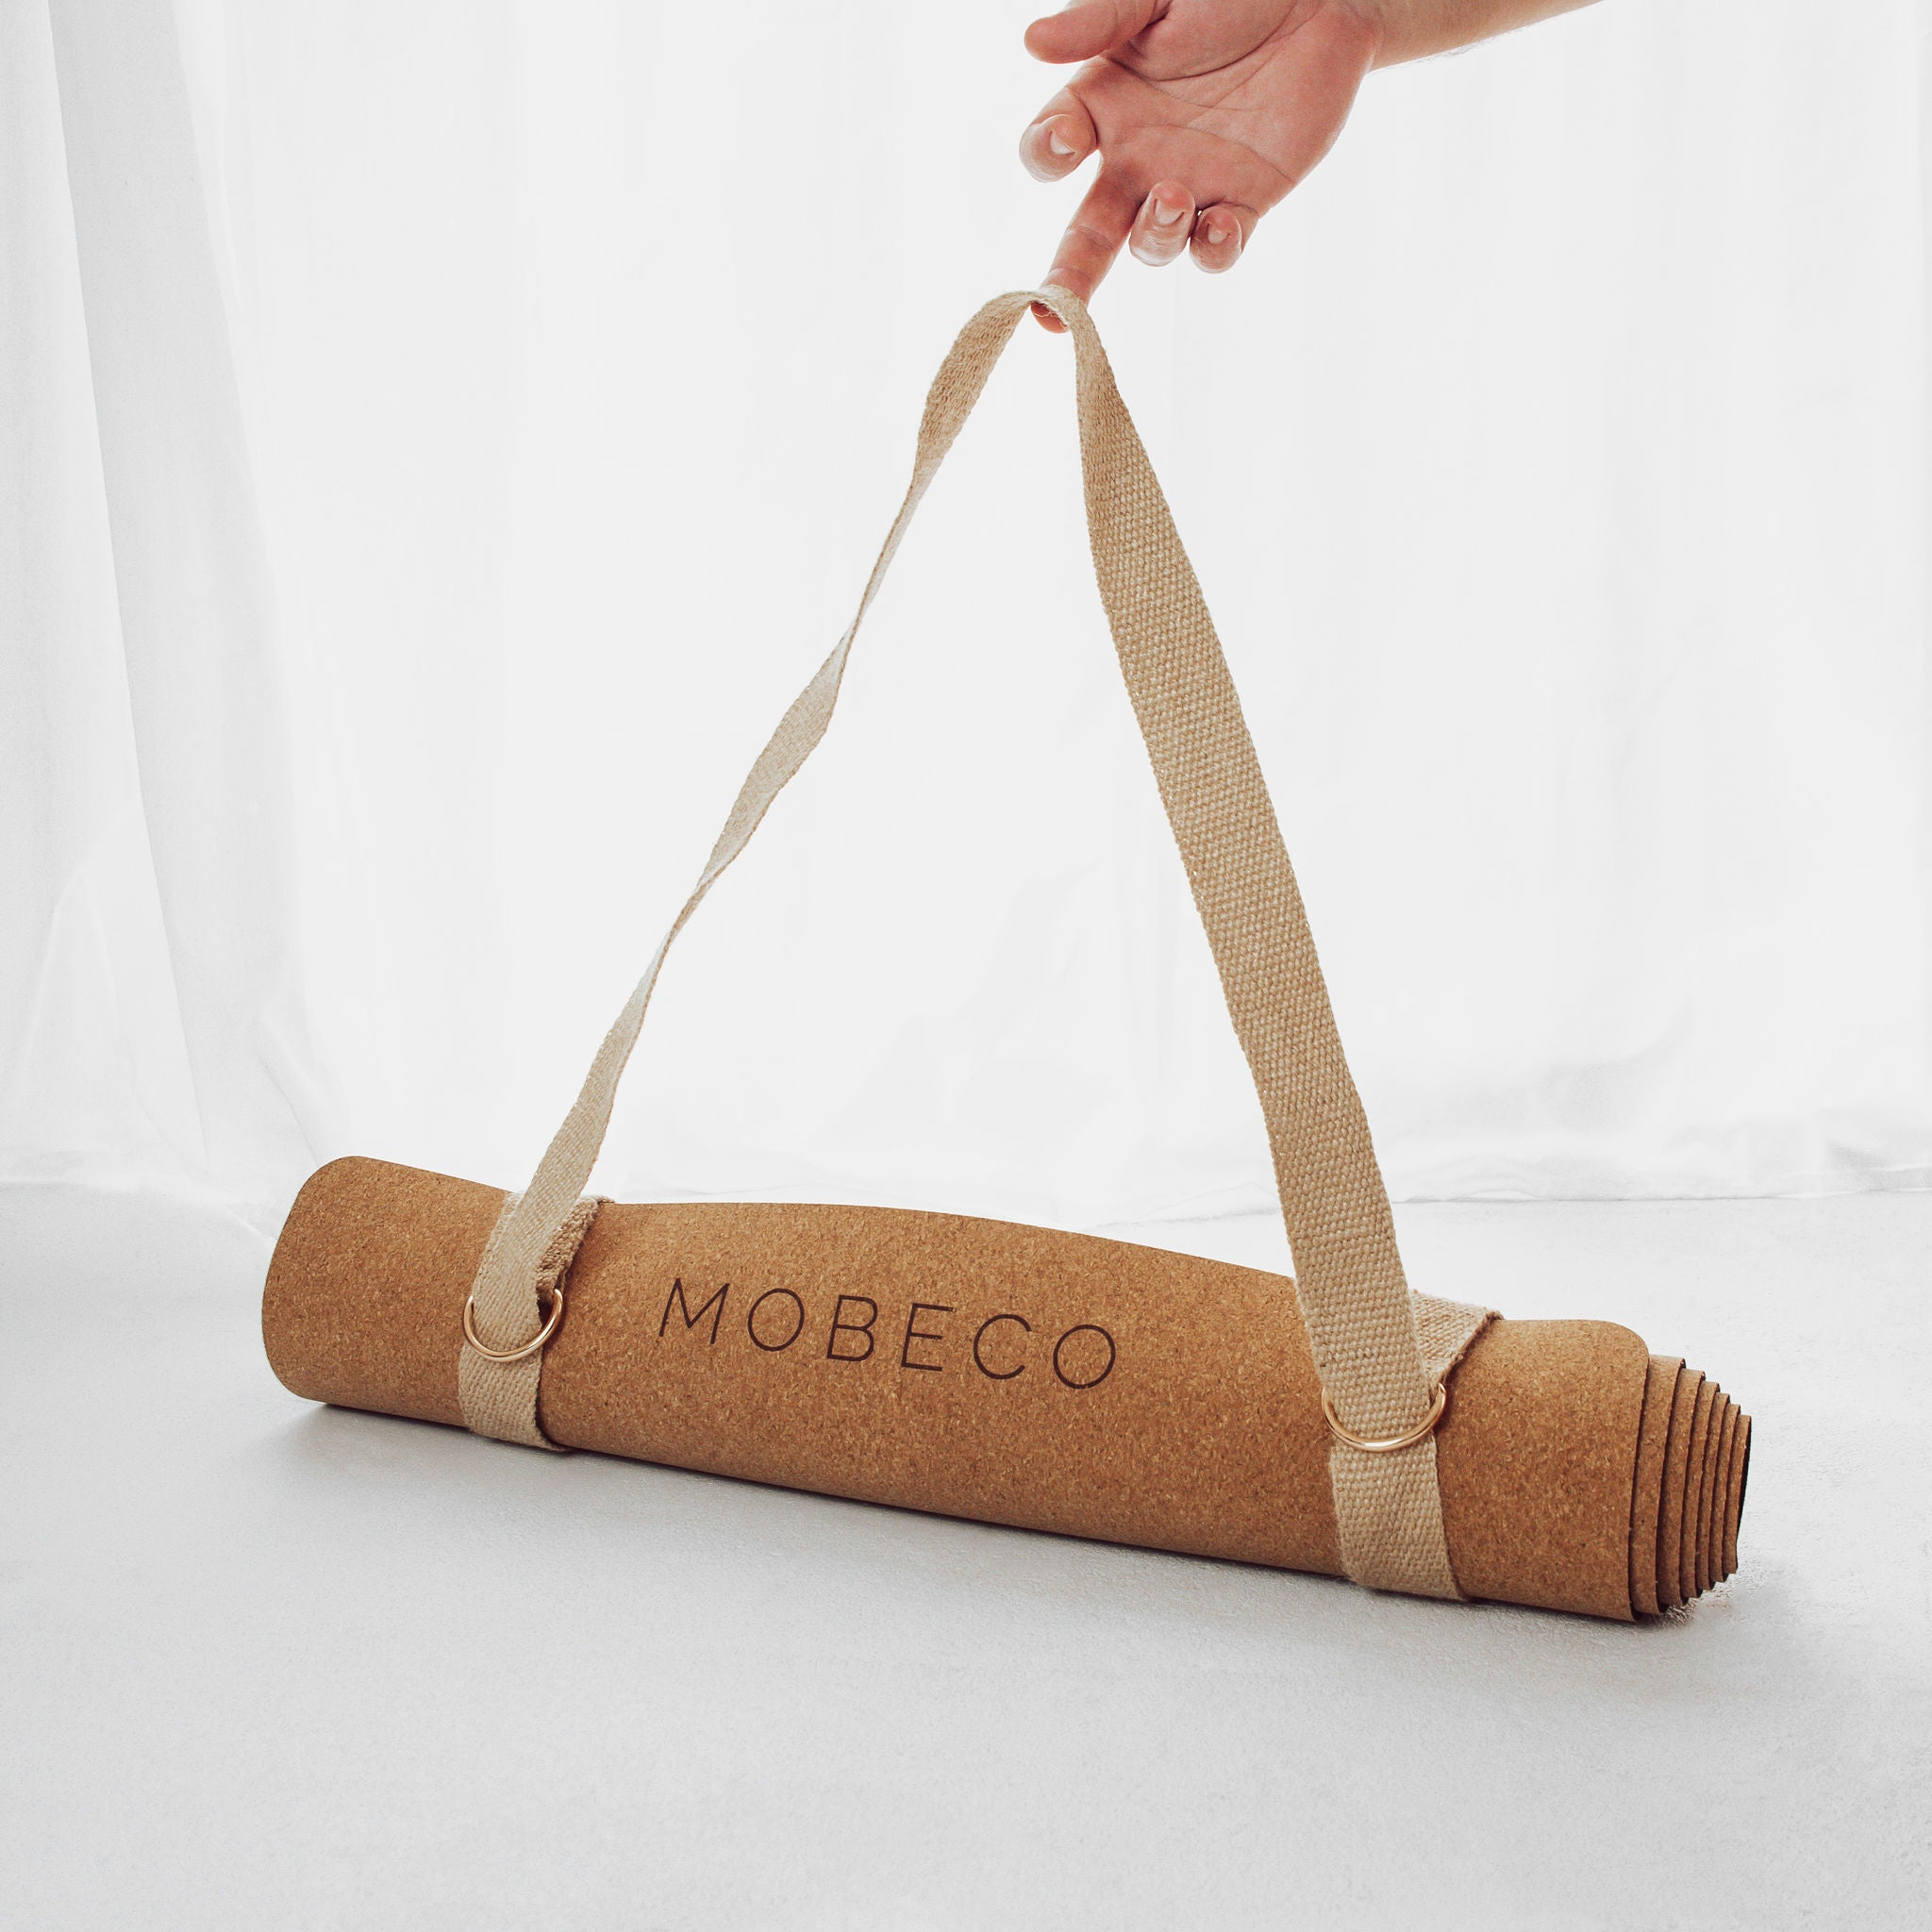 Hemp Strap and MOBECO Yoga Mat